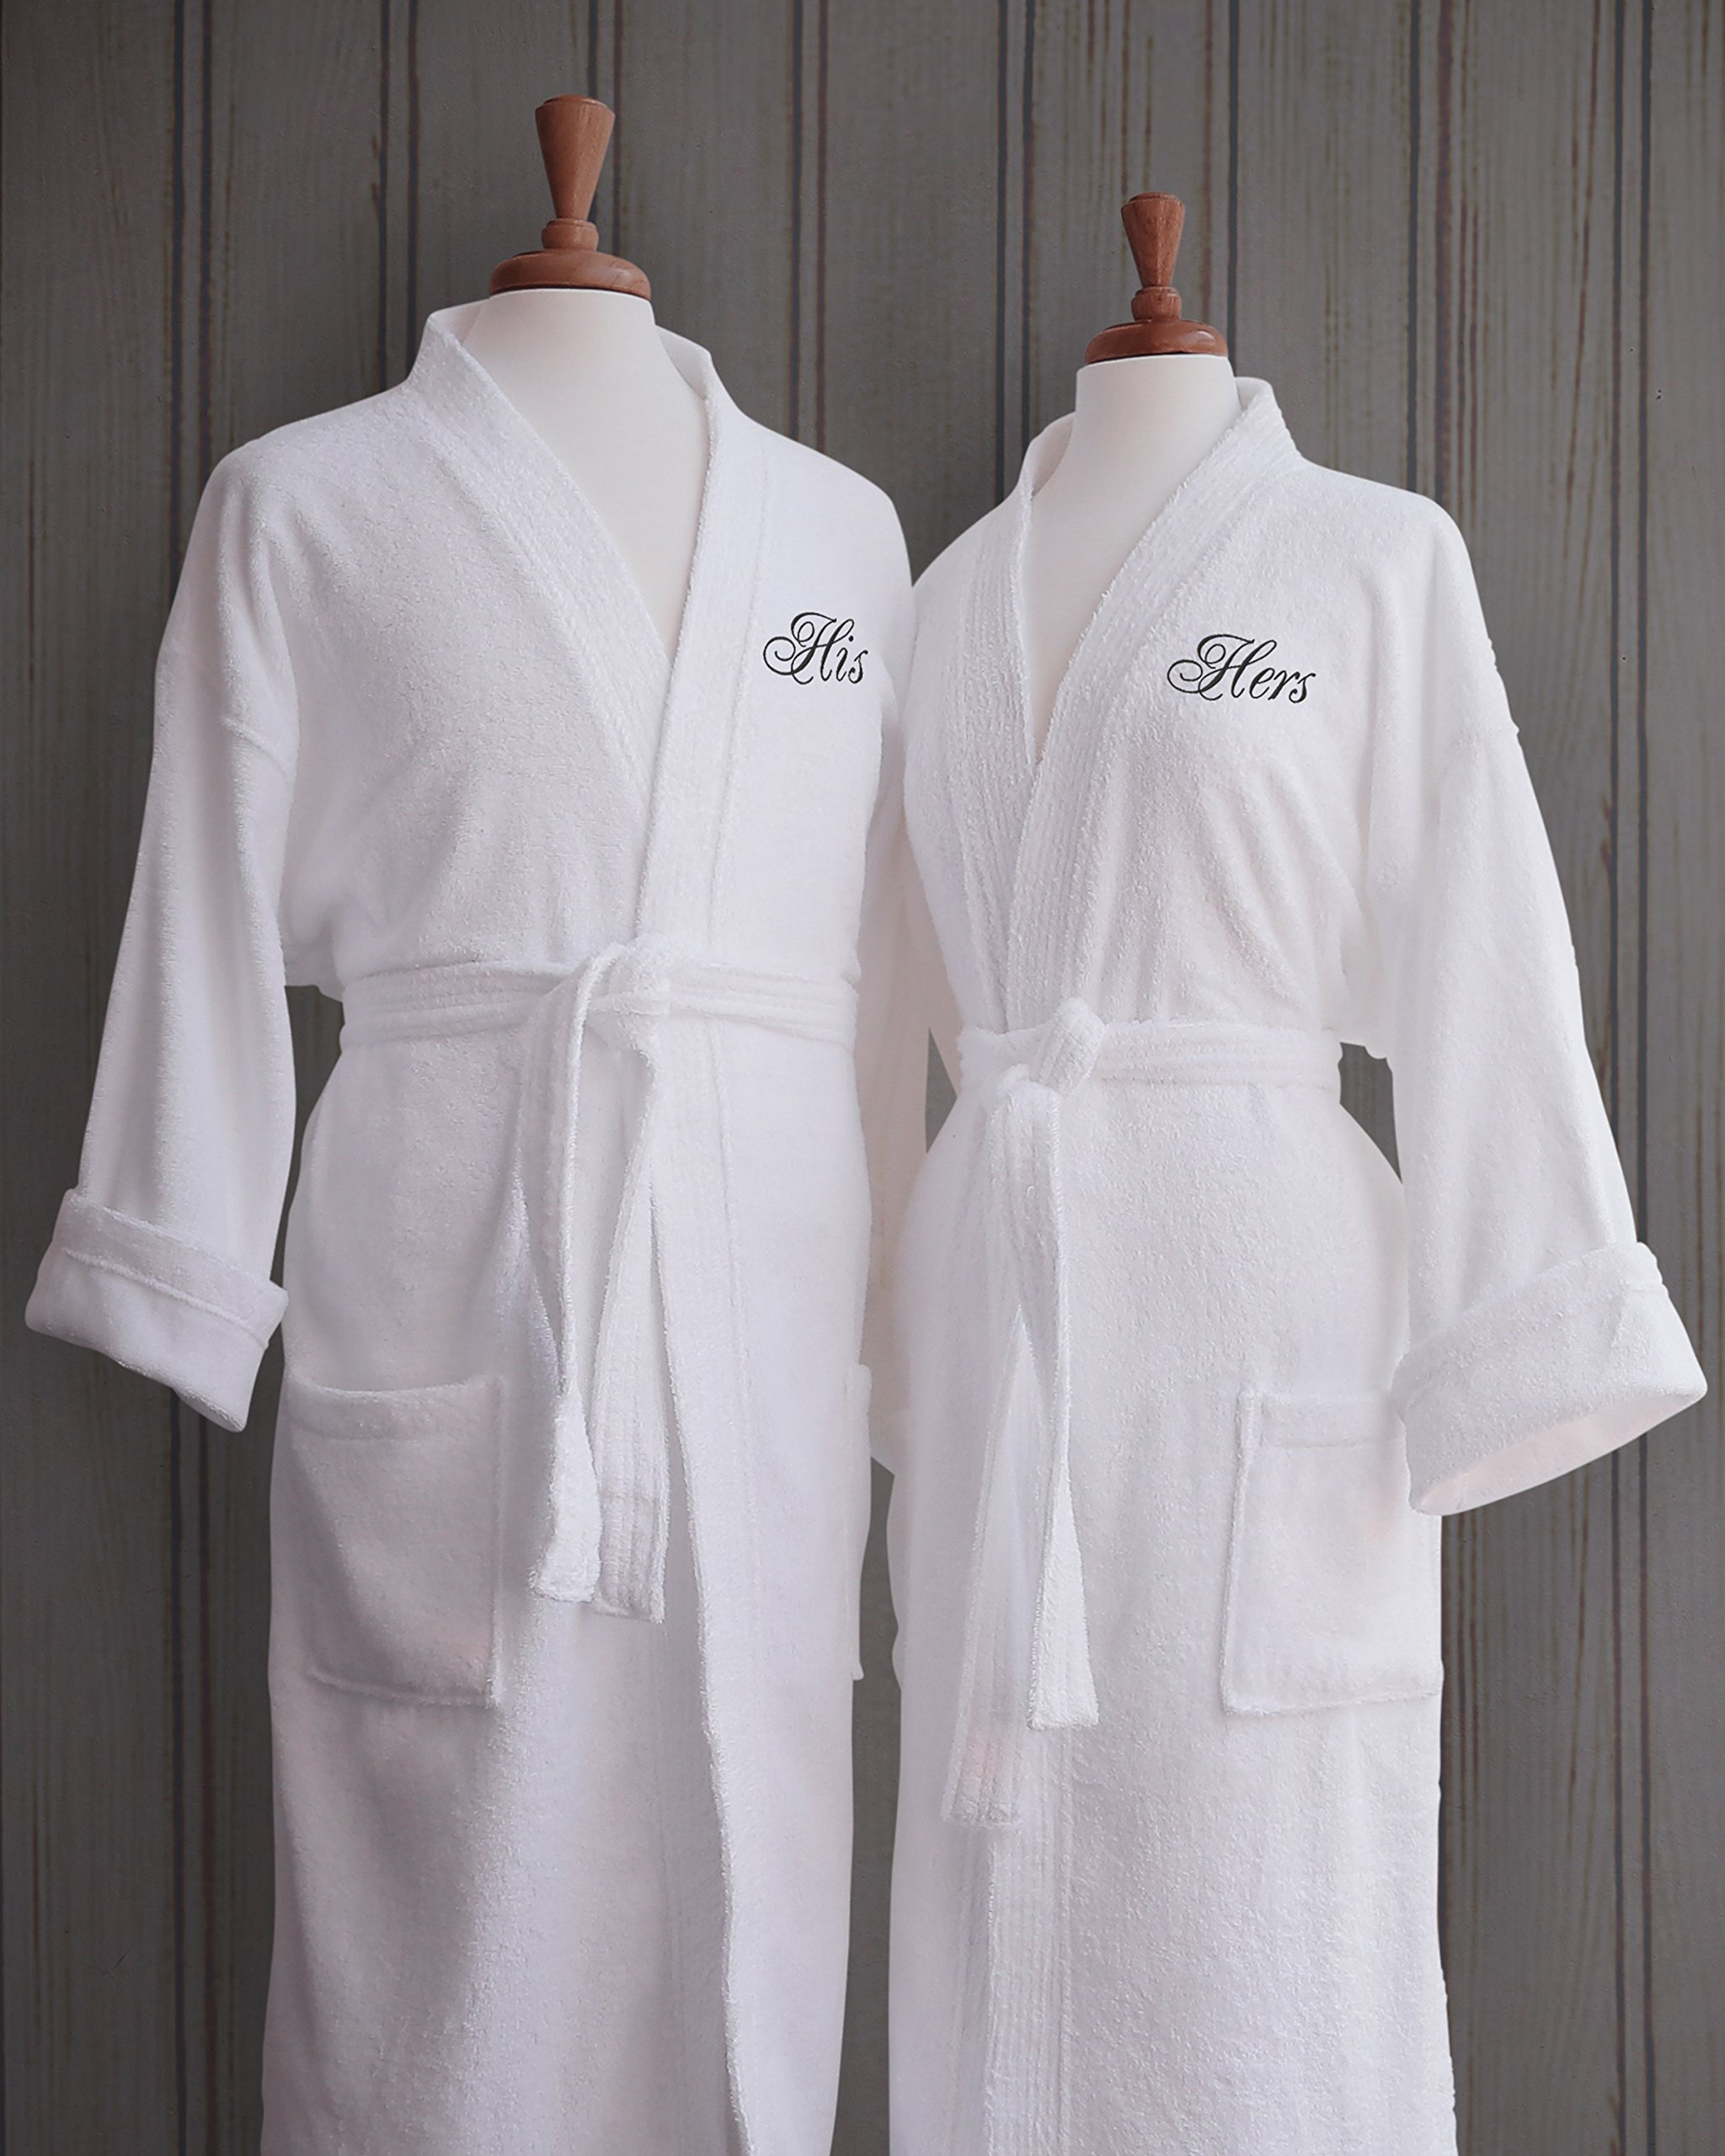 Luxor Linens - Terry Cloth Bathrobes - 100% Egyptian Cotton His & Her Bathrobe Set - Luxurious, Soft, Plush Durable Set of Robes